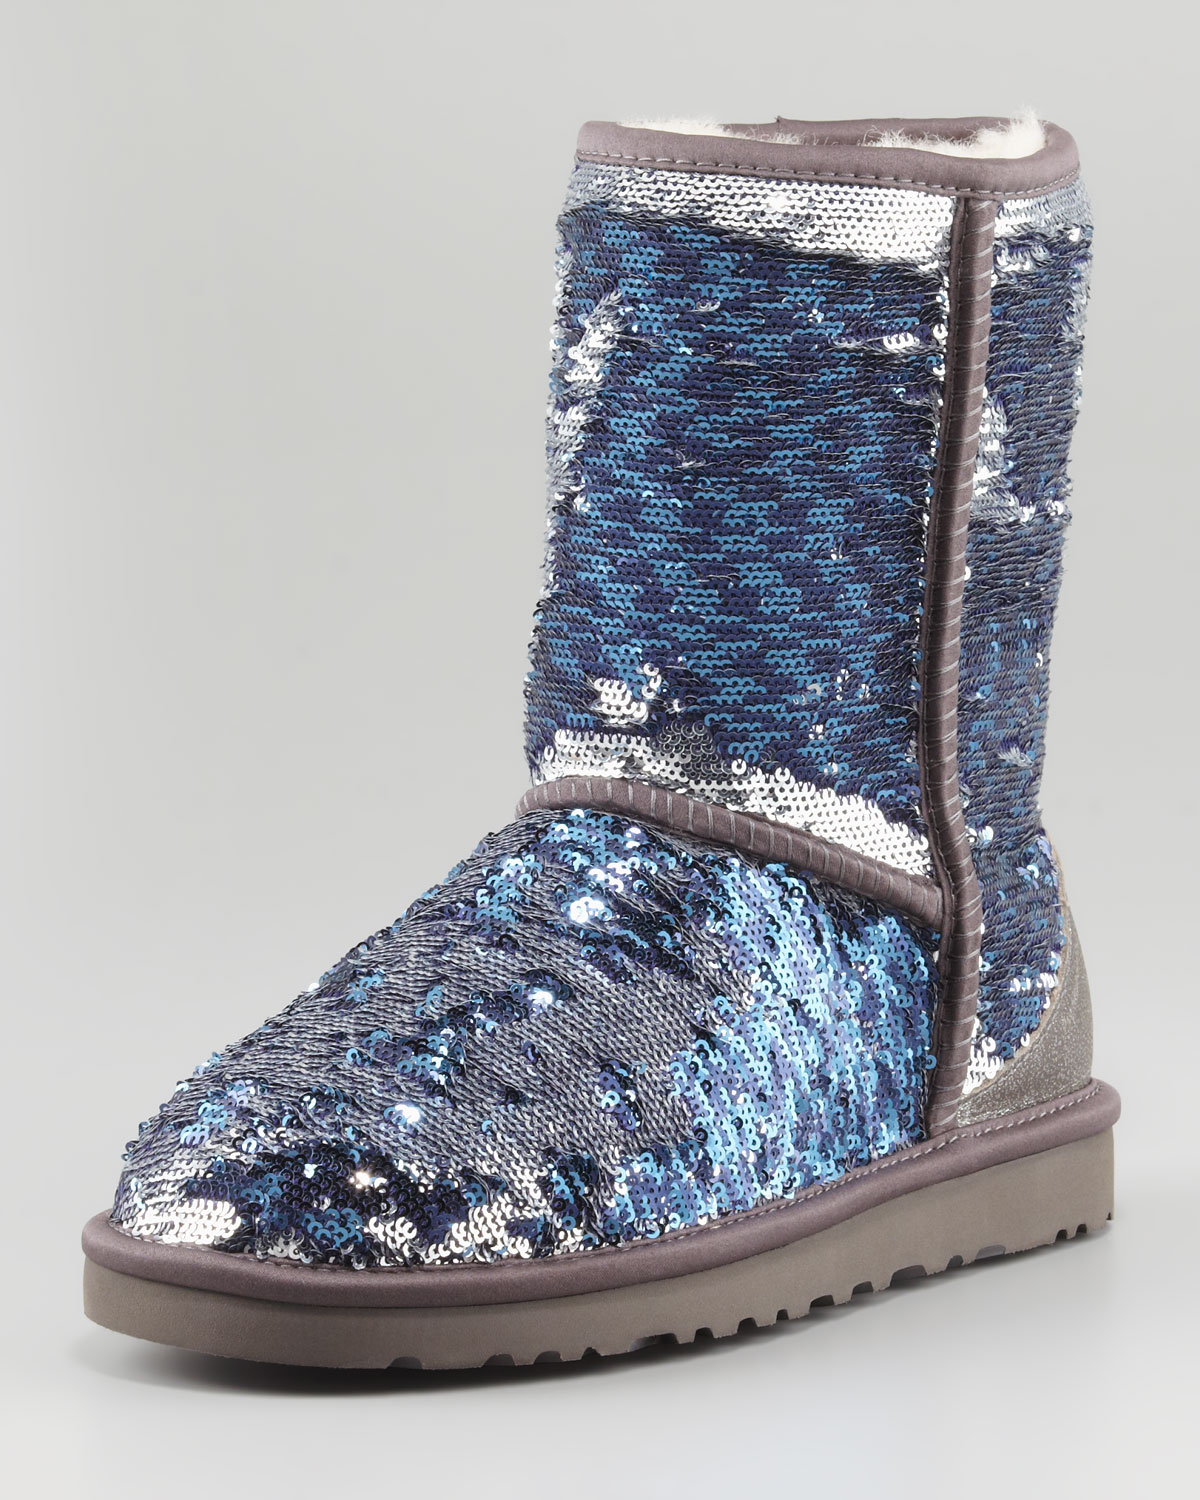 Lyst - UGG Sparkles Classic Short Boot Midnight Multi in Blue